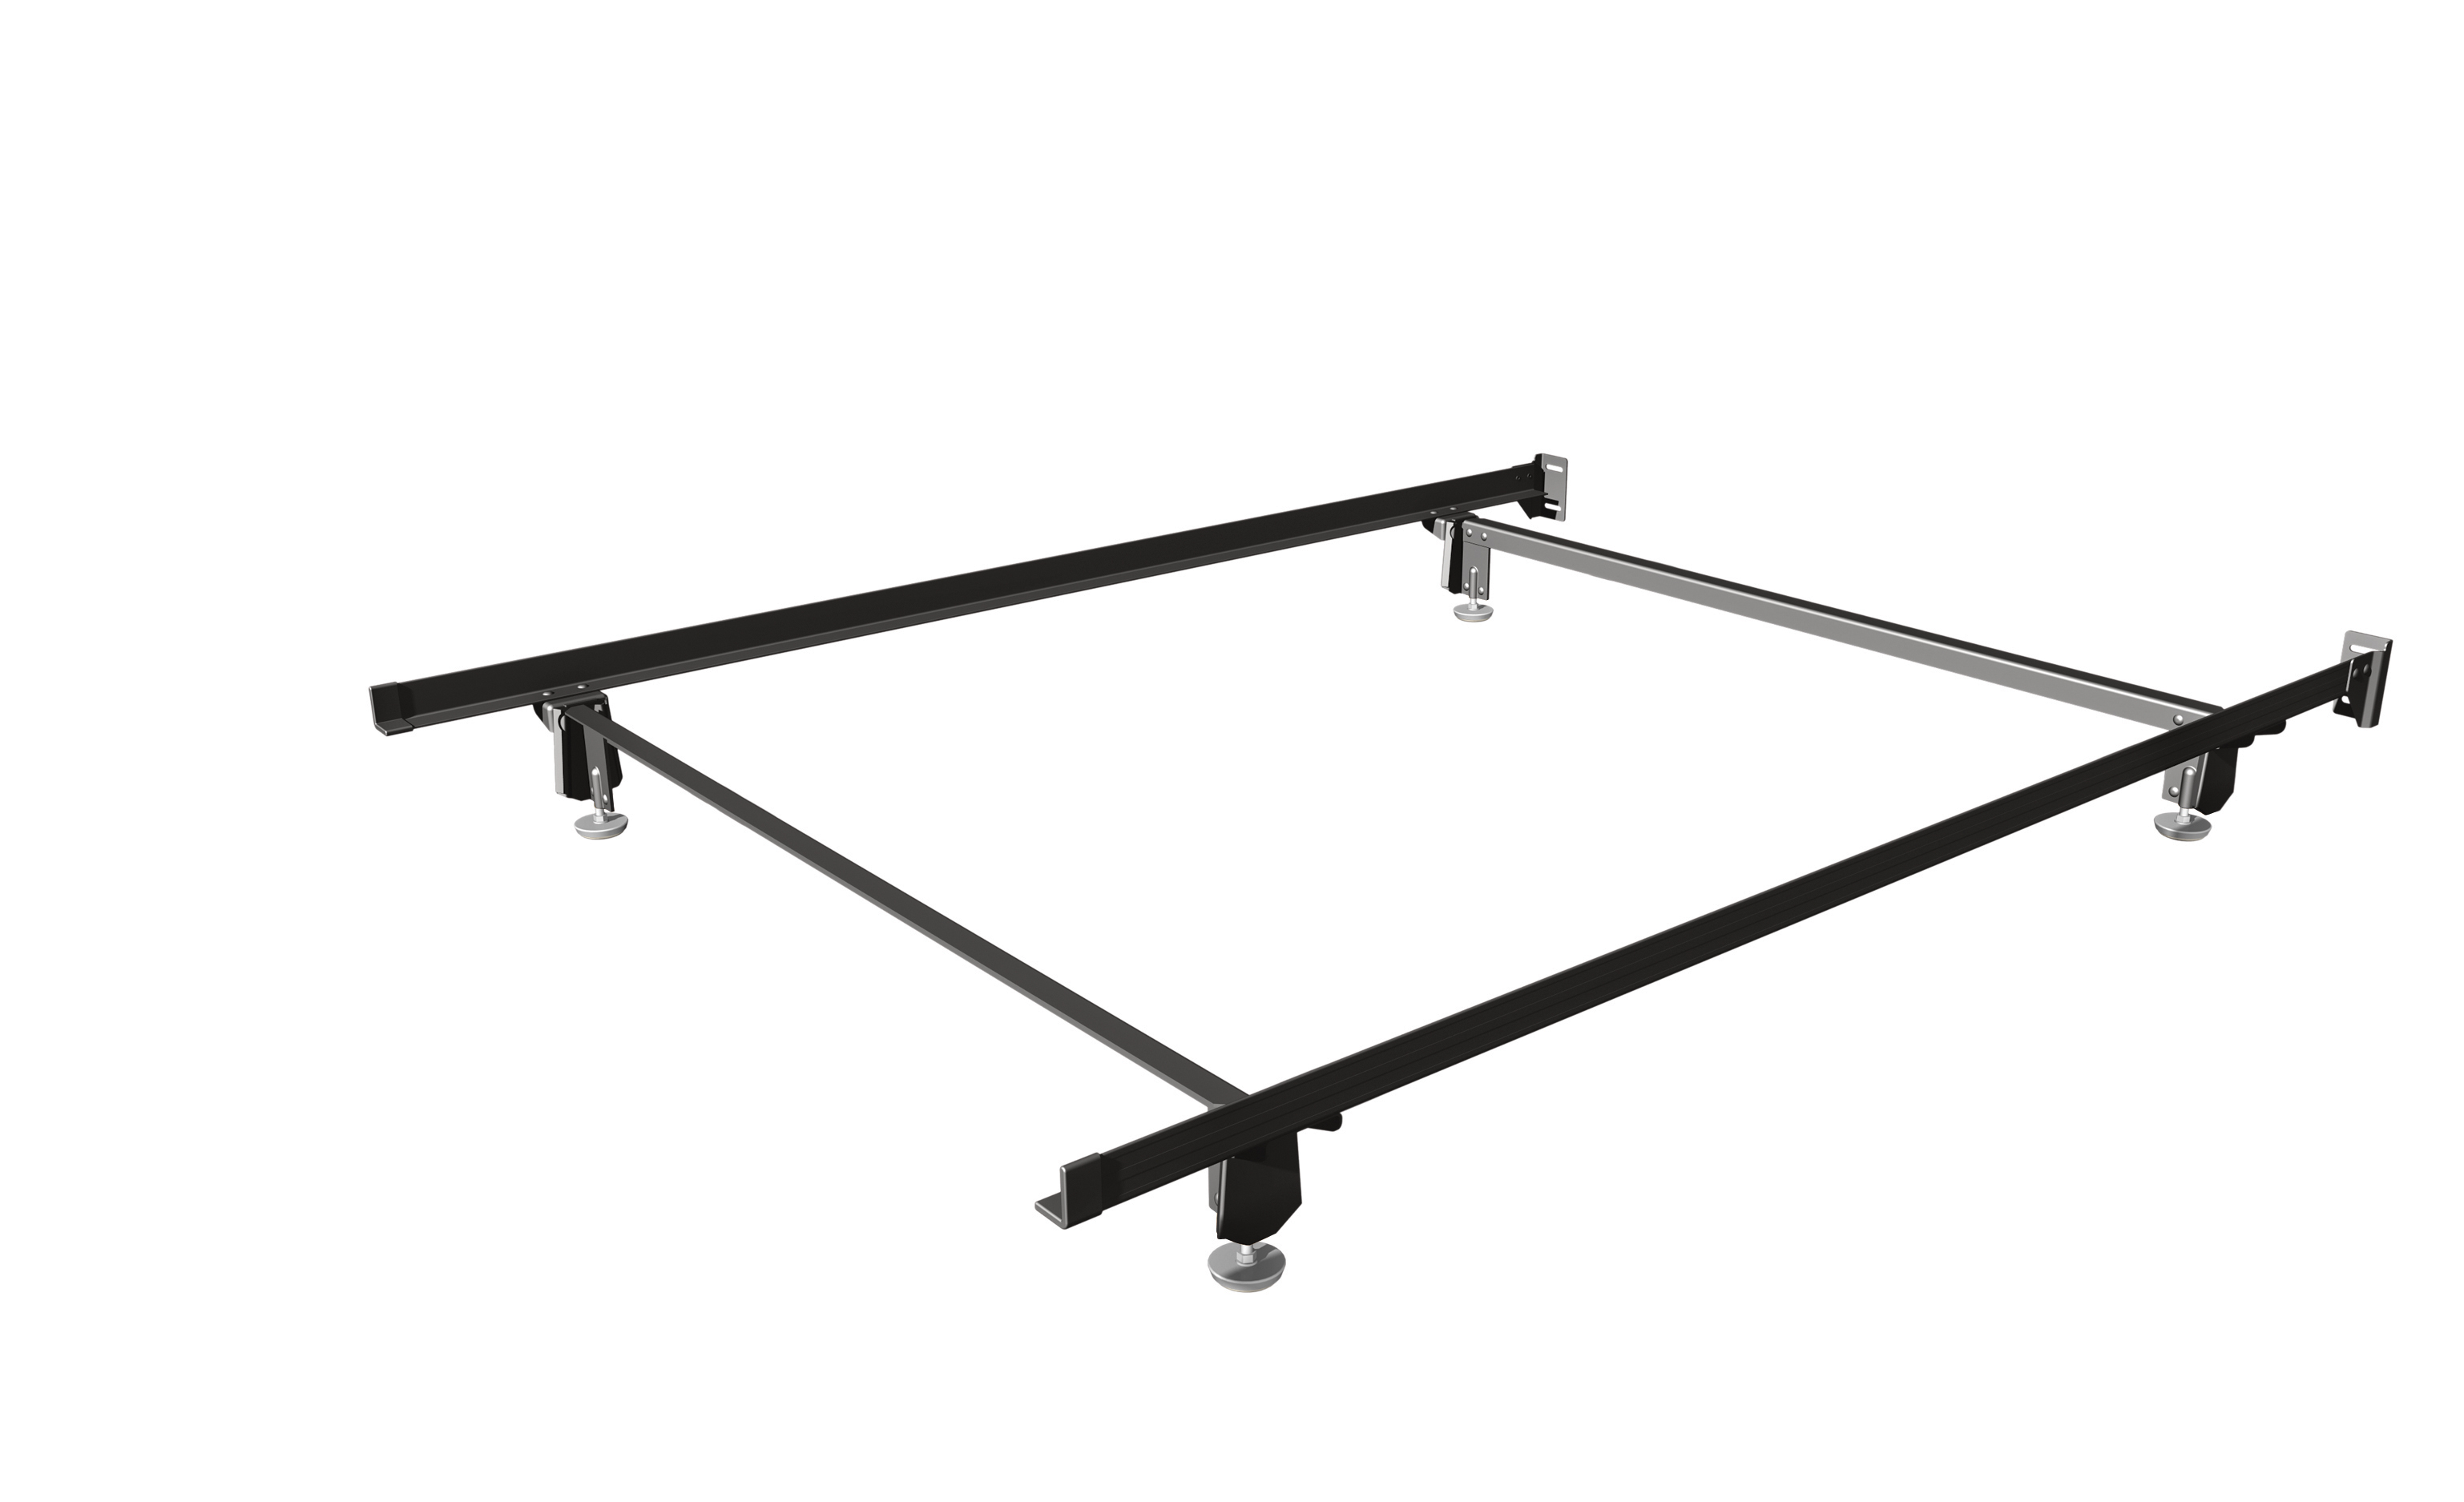 CraftLock 146R Full Bed Frame with Rollers